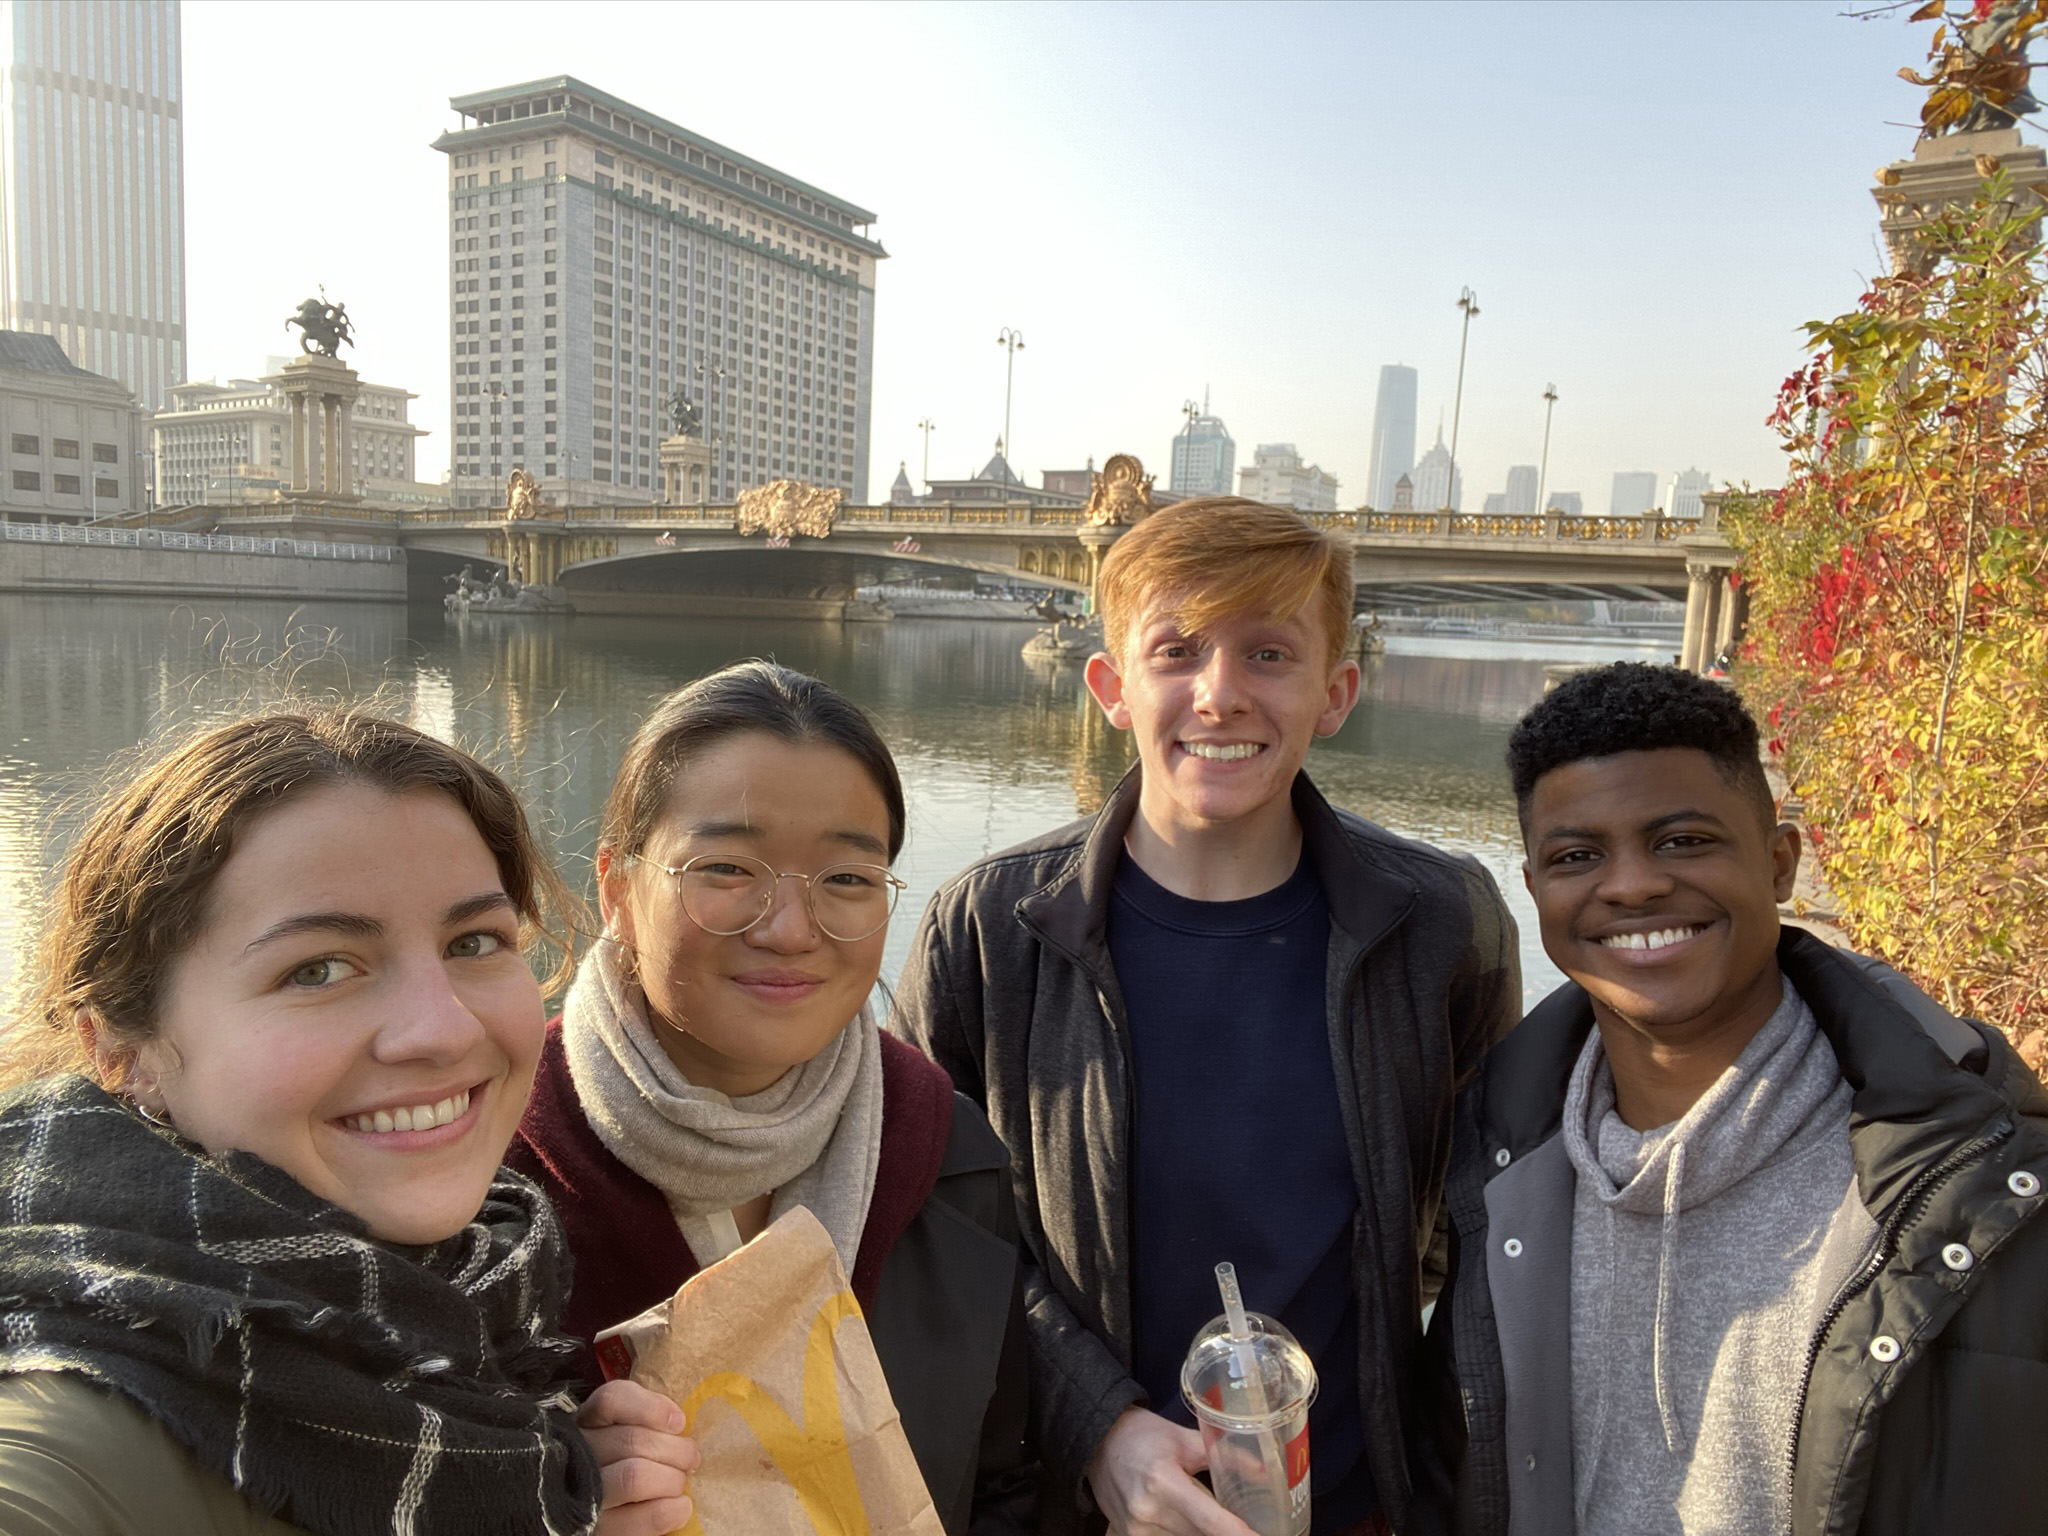 Enjoying McDonald's by the Hai river in Tianjin. Photo credit: Rannveig Sarc